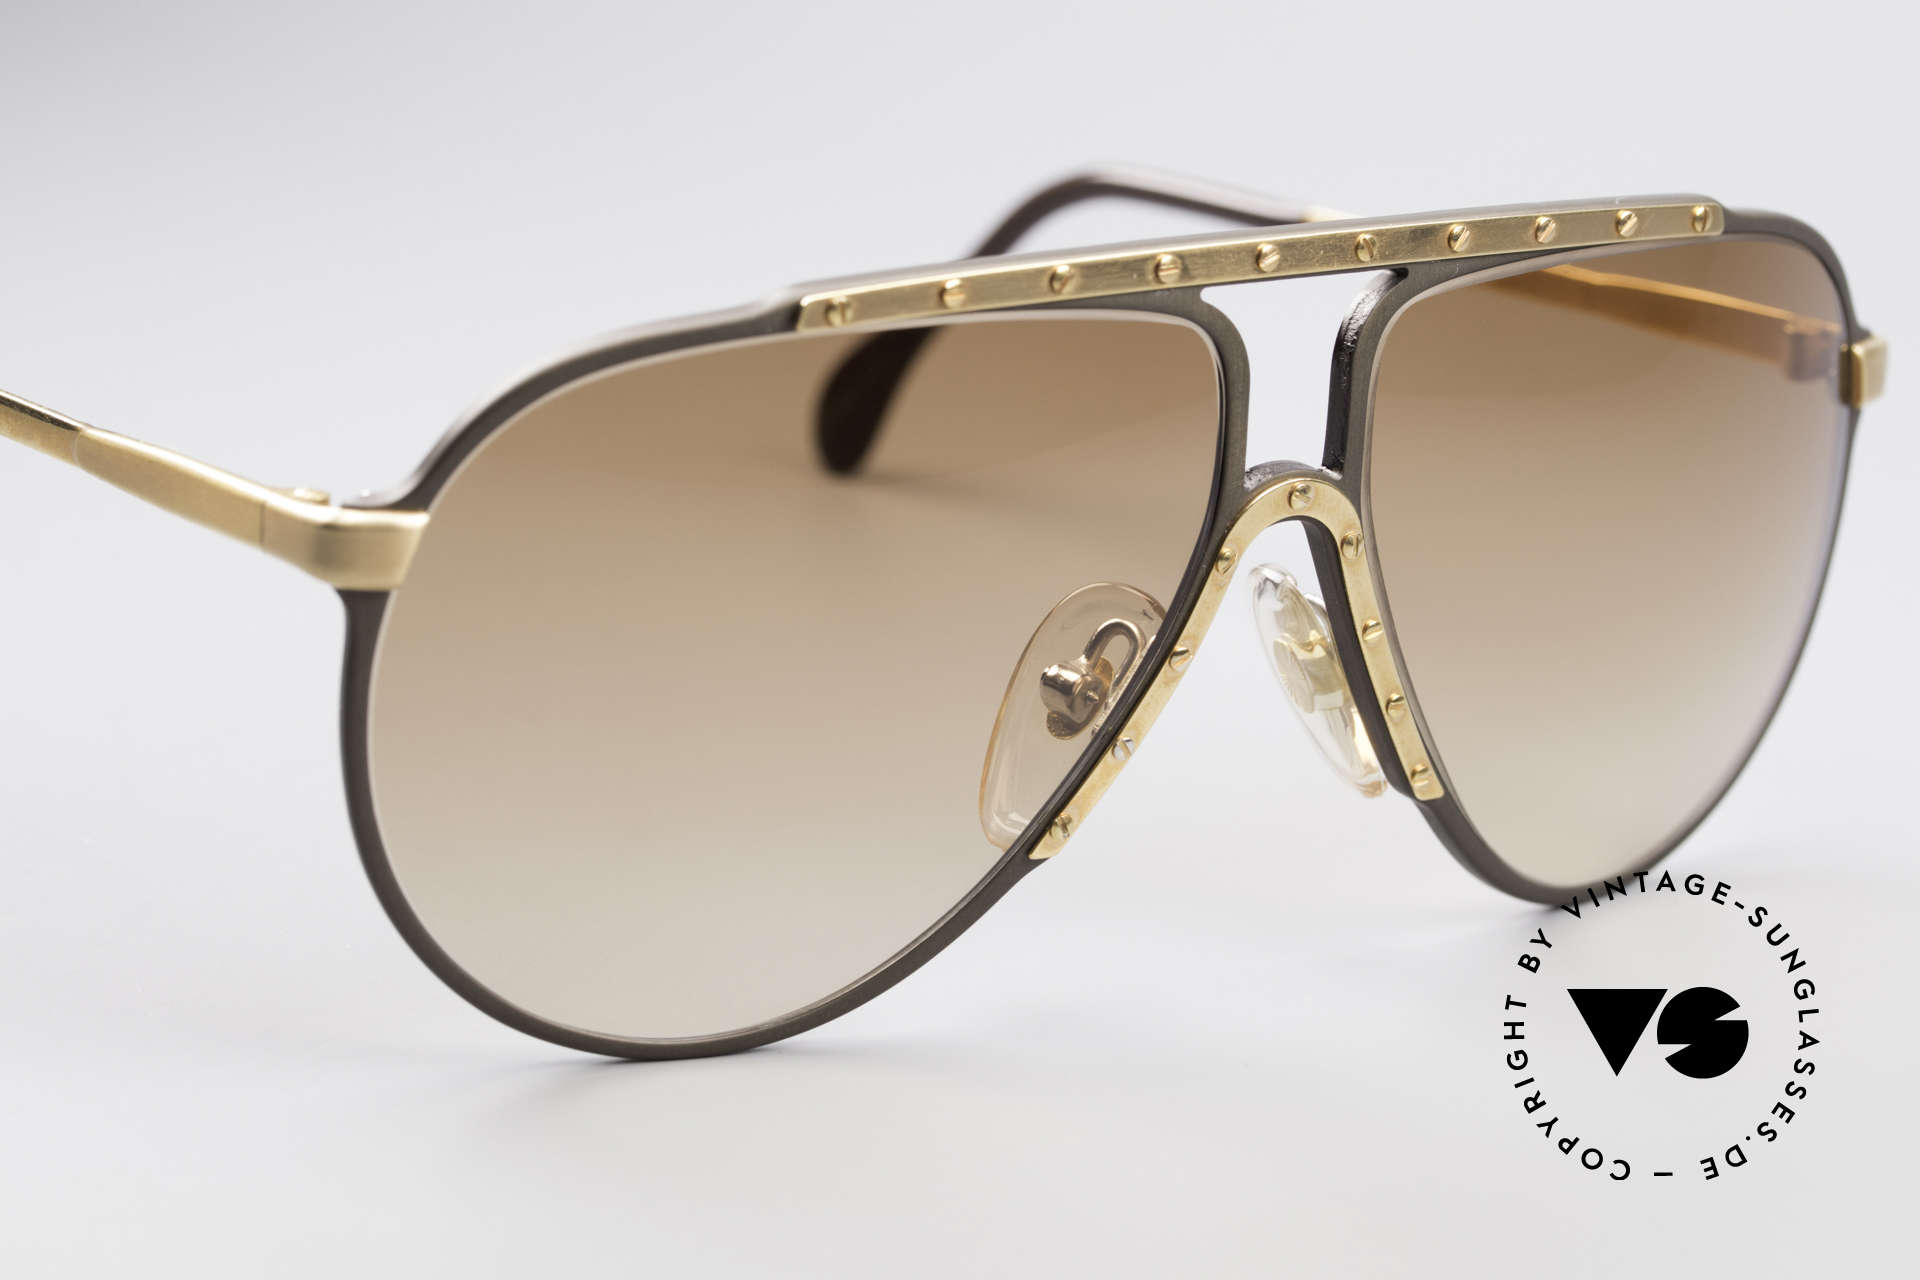 Alpina M1 Iconic West Germany Frame, one of the most wanted vintage shades, WORLDWIDE, Made for Men and Women